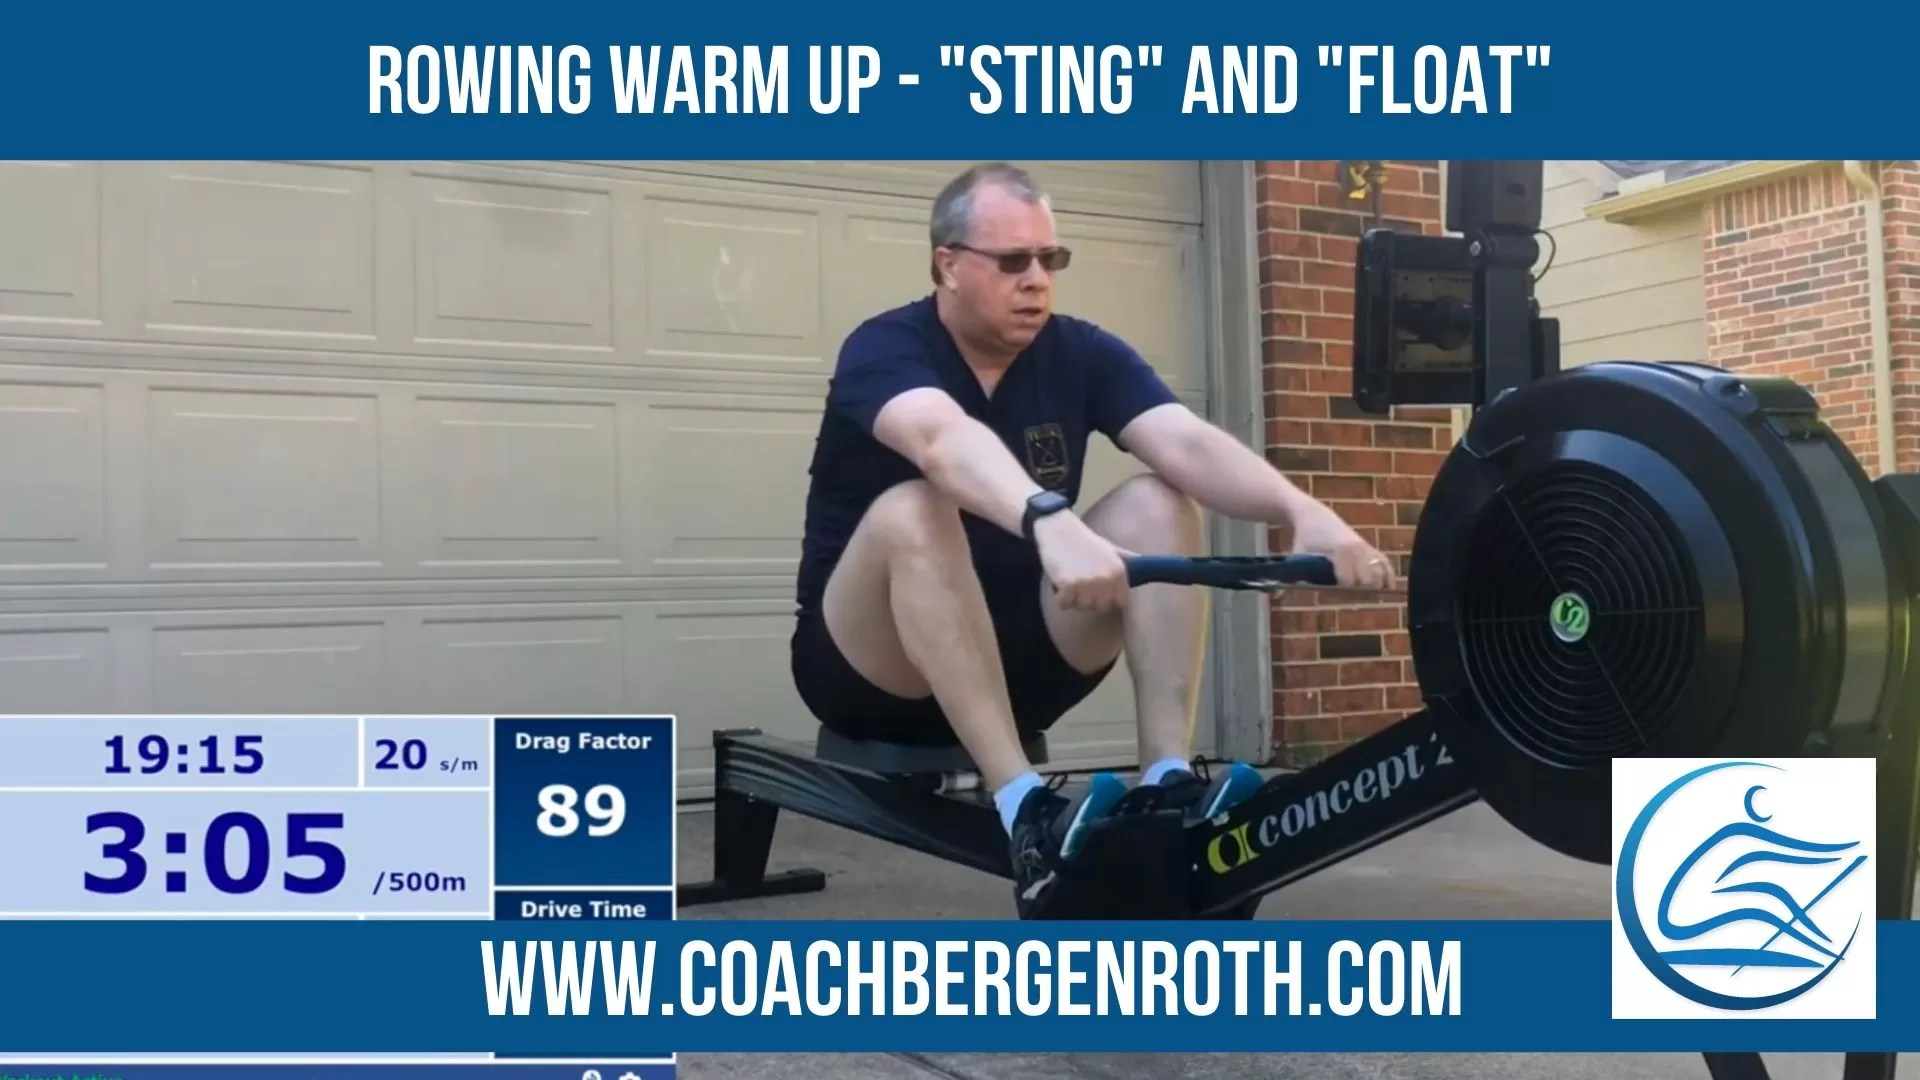 warm up rowing sting and float smaller